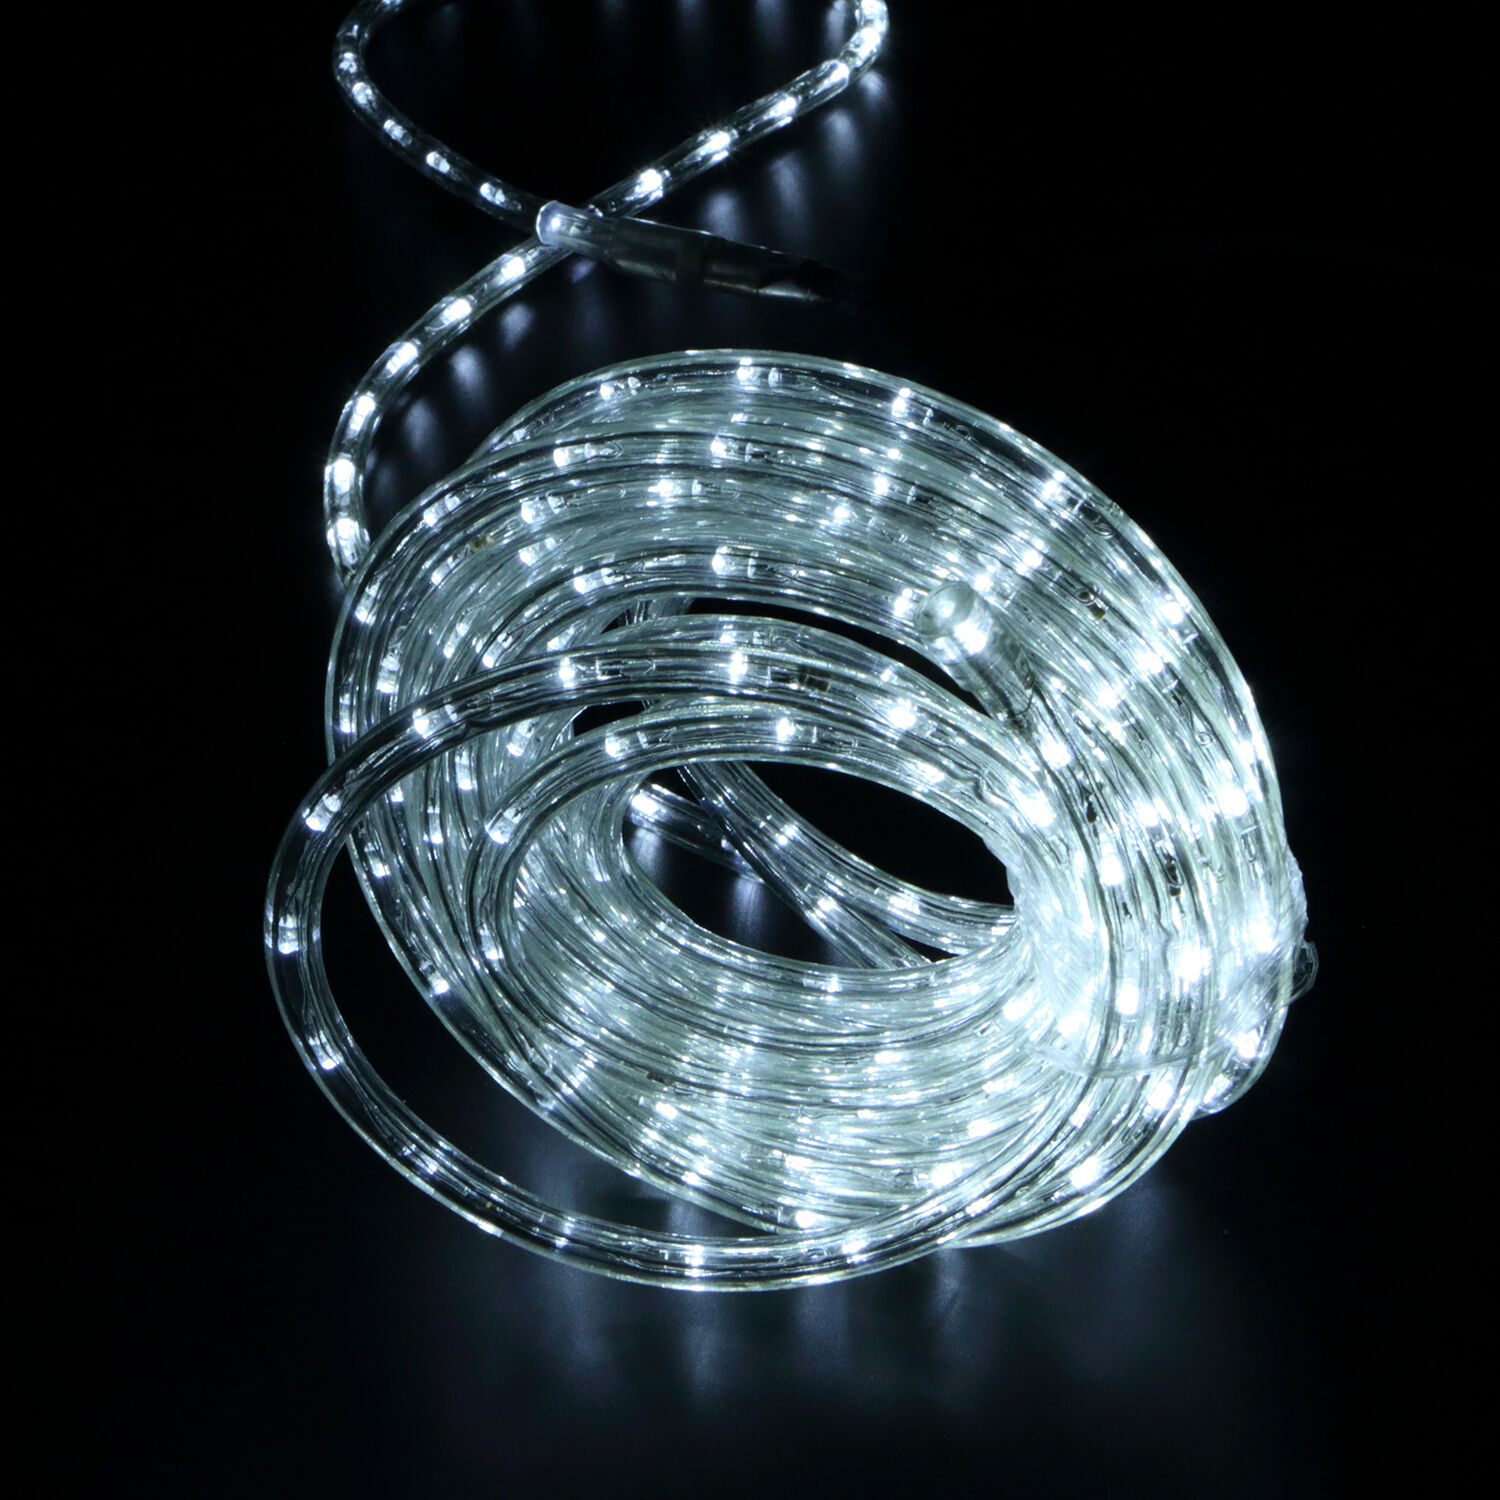 10ft 2 wire led rope light home party decoration flexible lighting picture 1 of 9 aloadofball Gallery